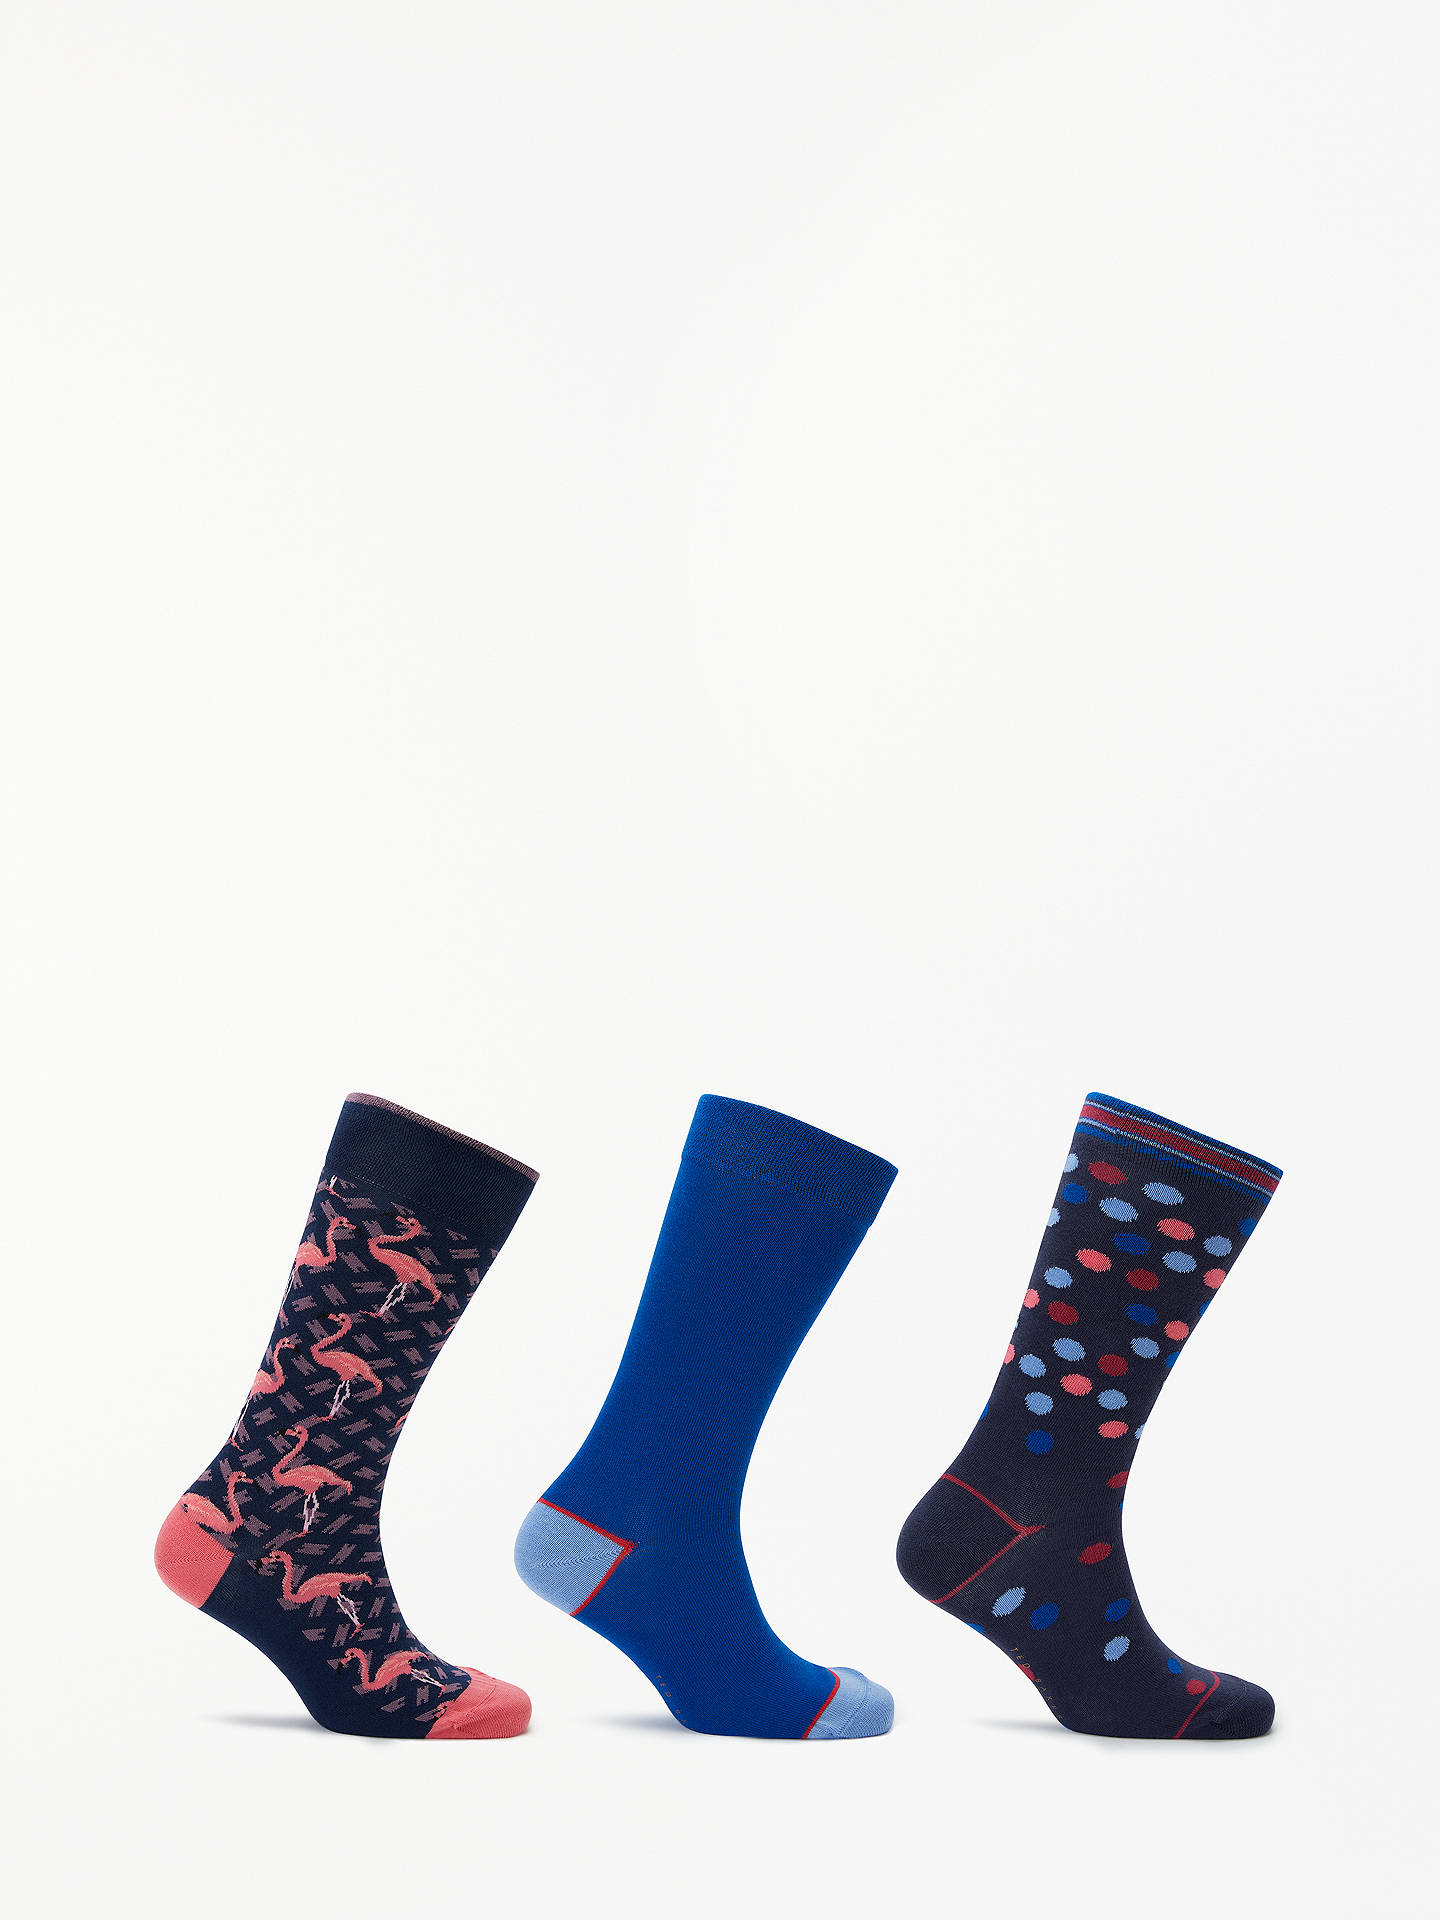 Buy Ted Baker Tinse Flamingo Socks, Pack of 3, One Size, Blue/Pink Online at johnlewis.com